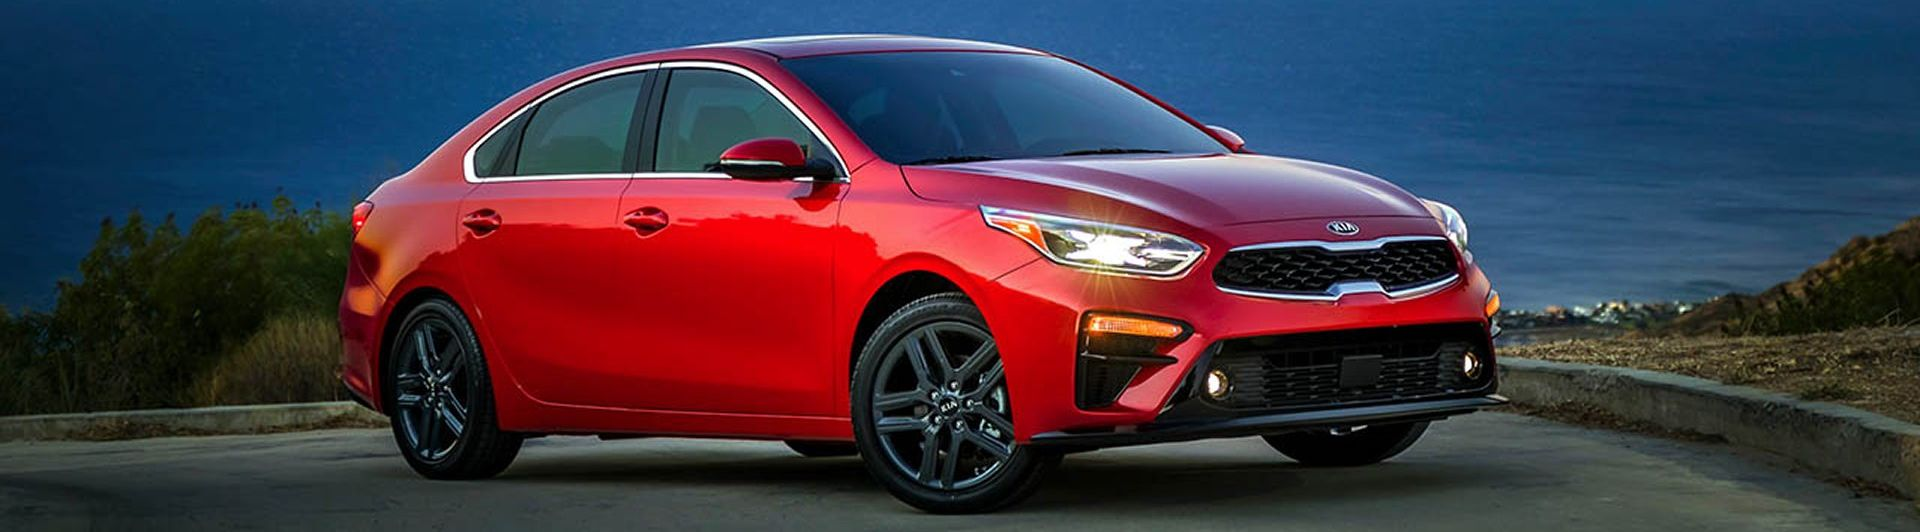 2019 Kia Forte Preview near San Diego, CA